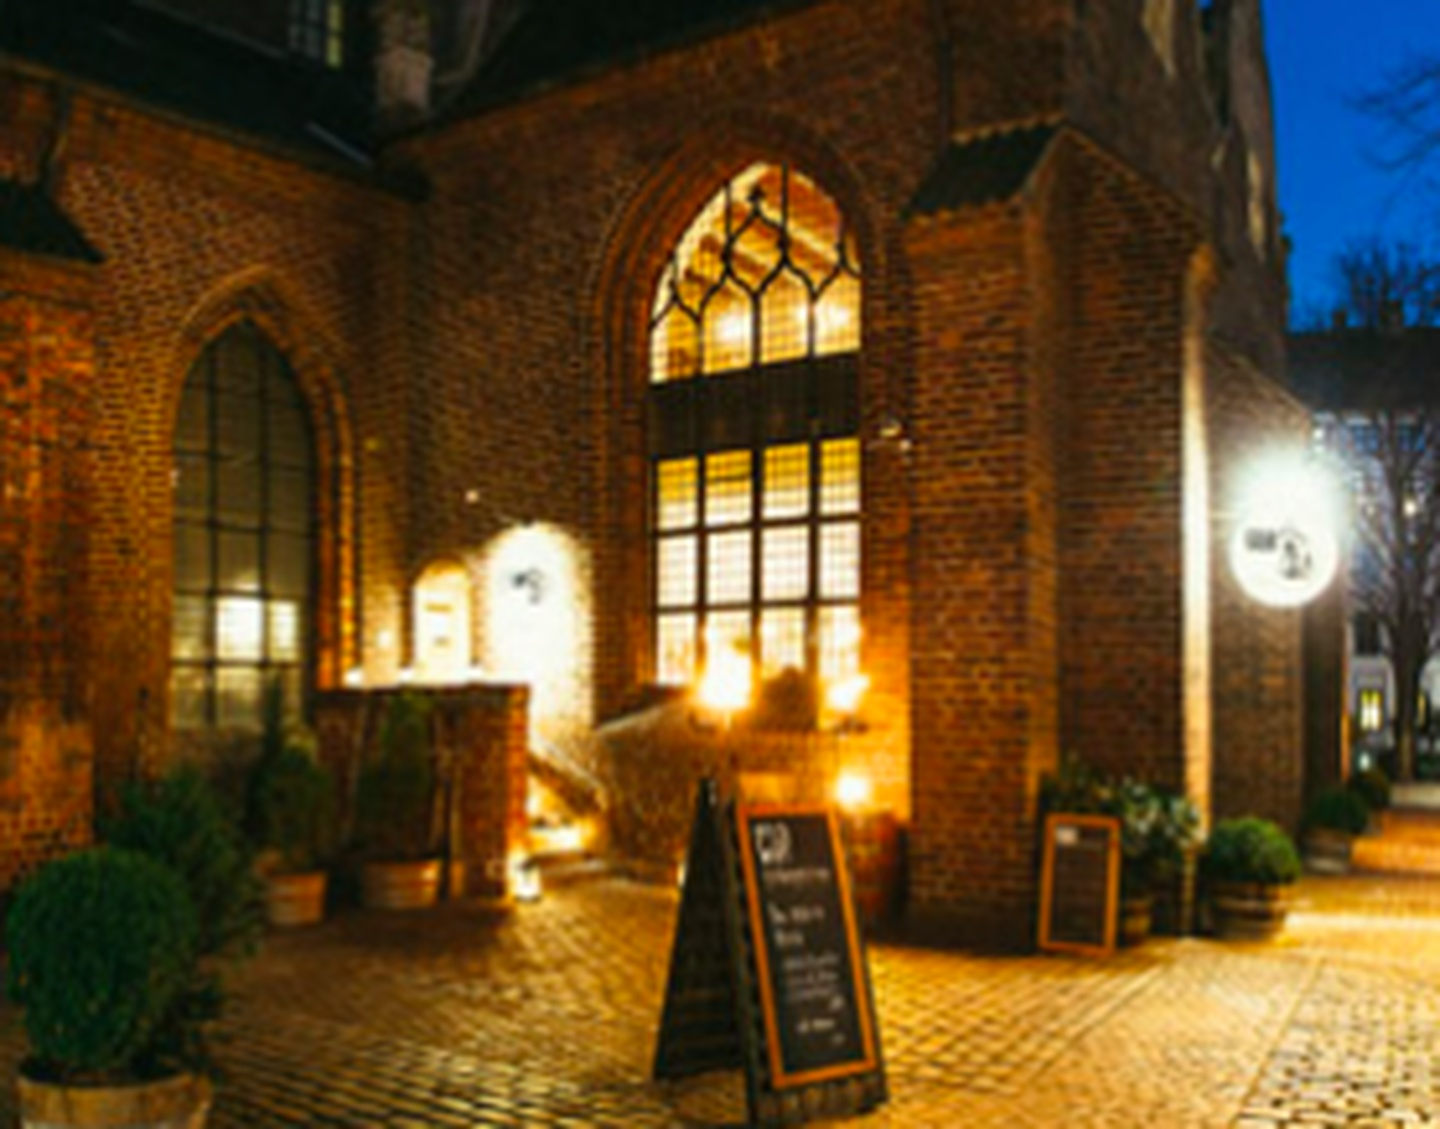 Kopenhagen corporate event venues Restaurant Restaurant Maven - Restaurant and Wine Bar image 11